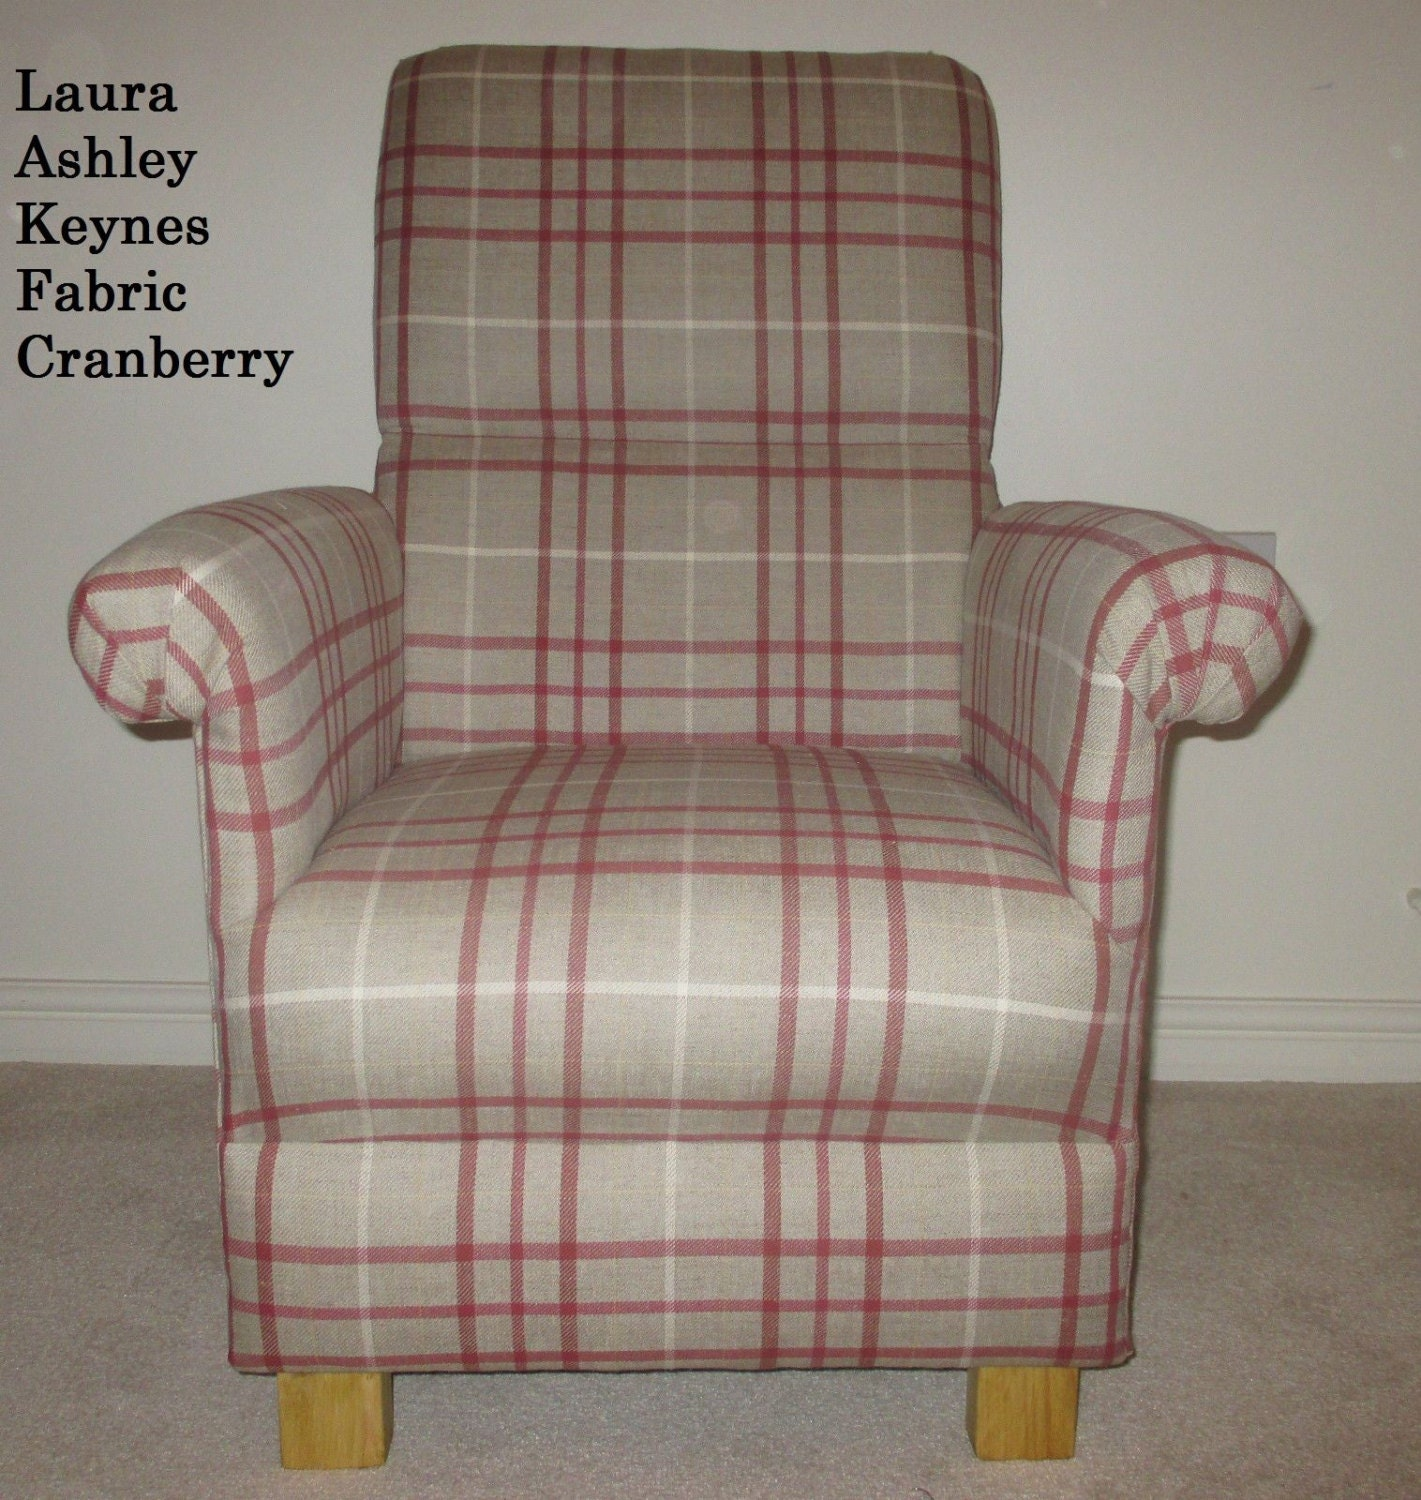 Ashley Home Furniture Prices: Laura Ashley Keynes Fabric Cranberry Adult Chair Beige Check